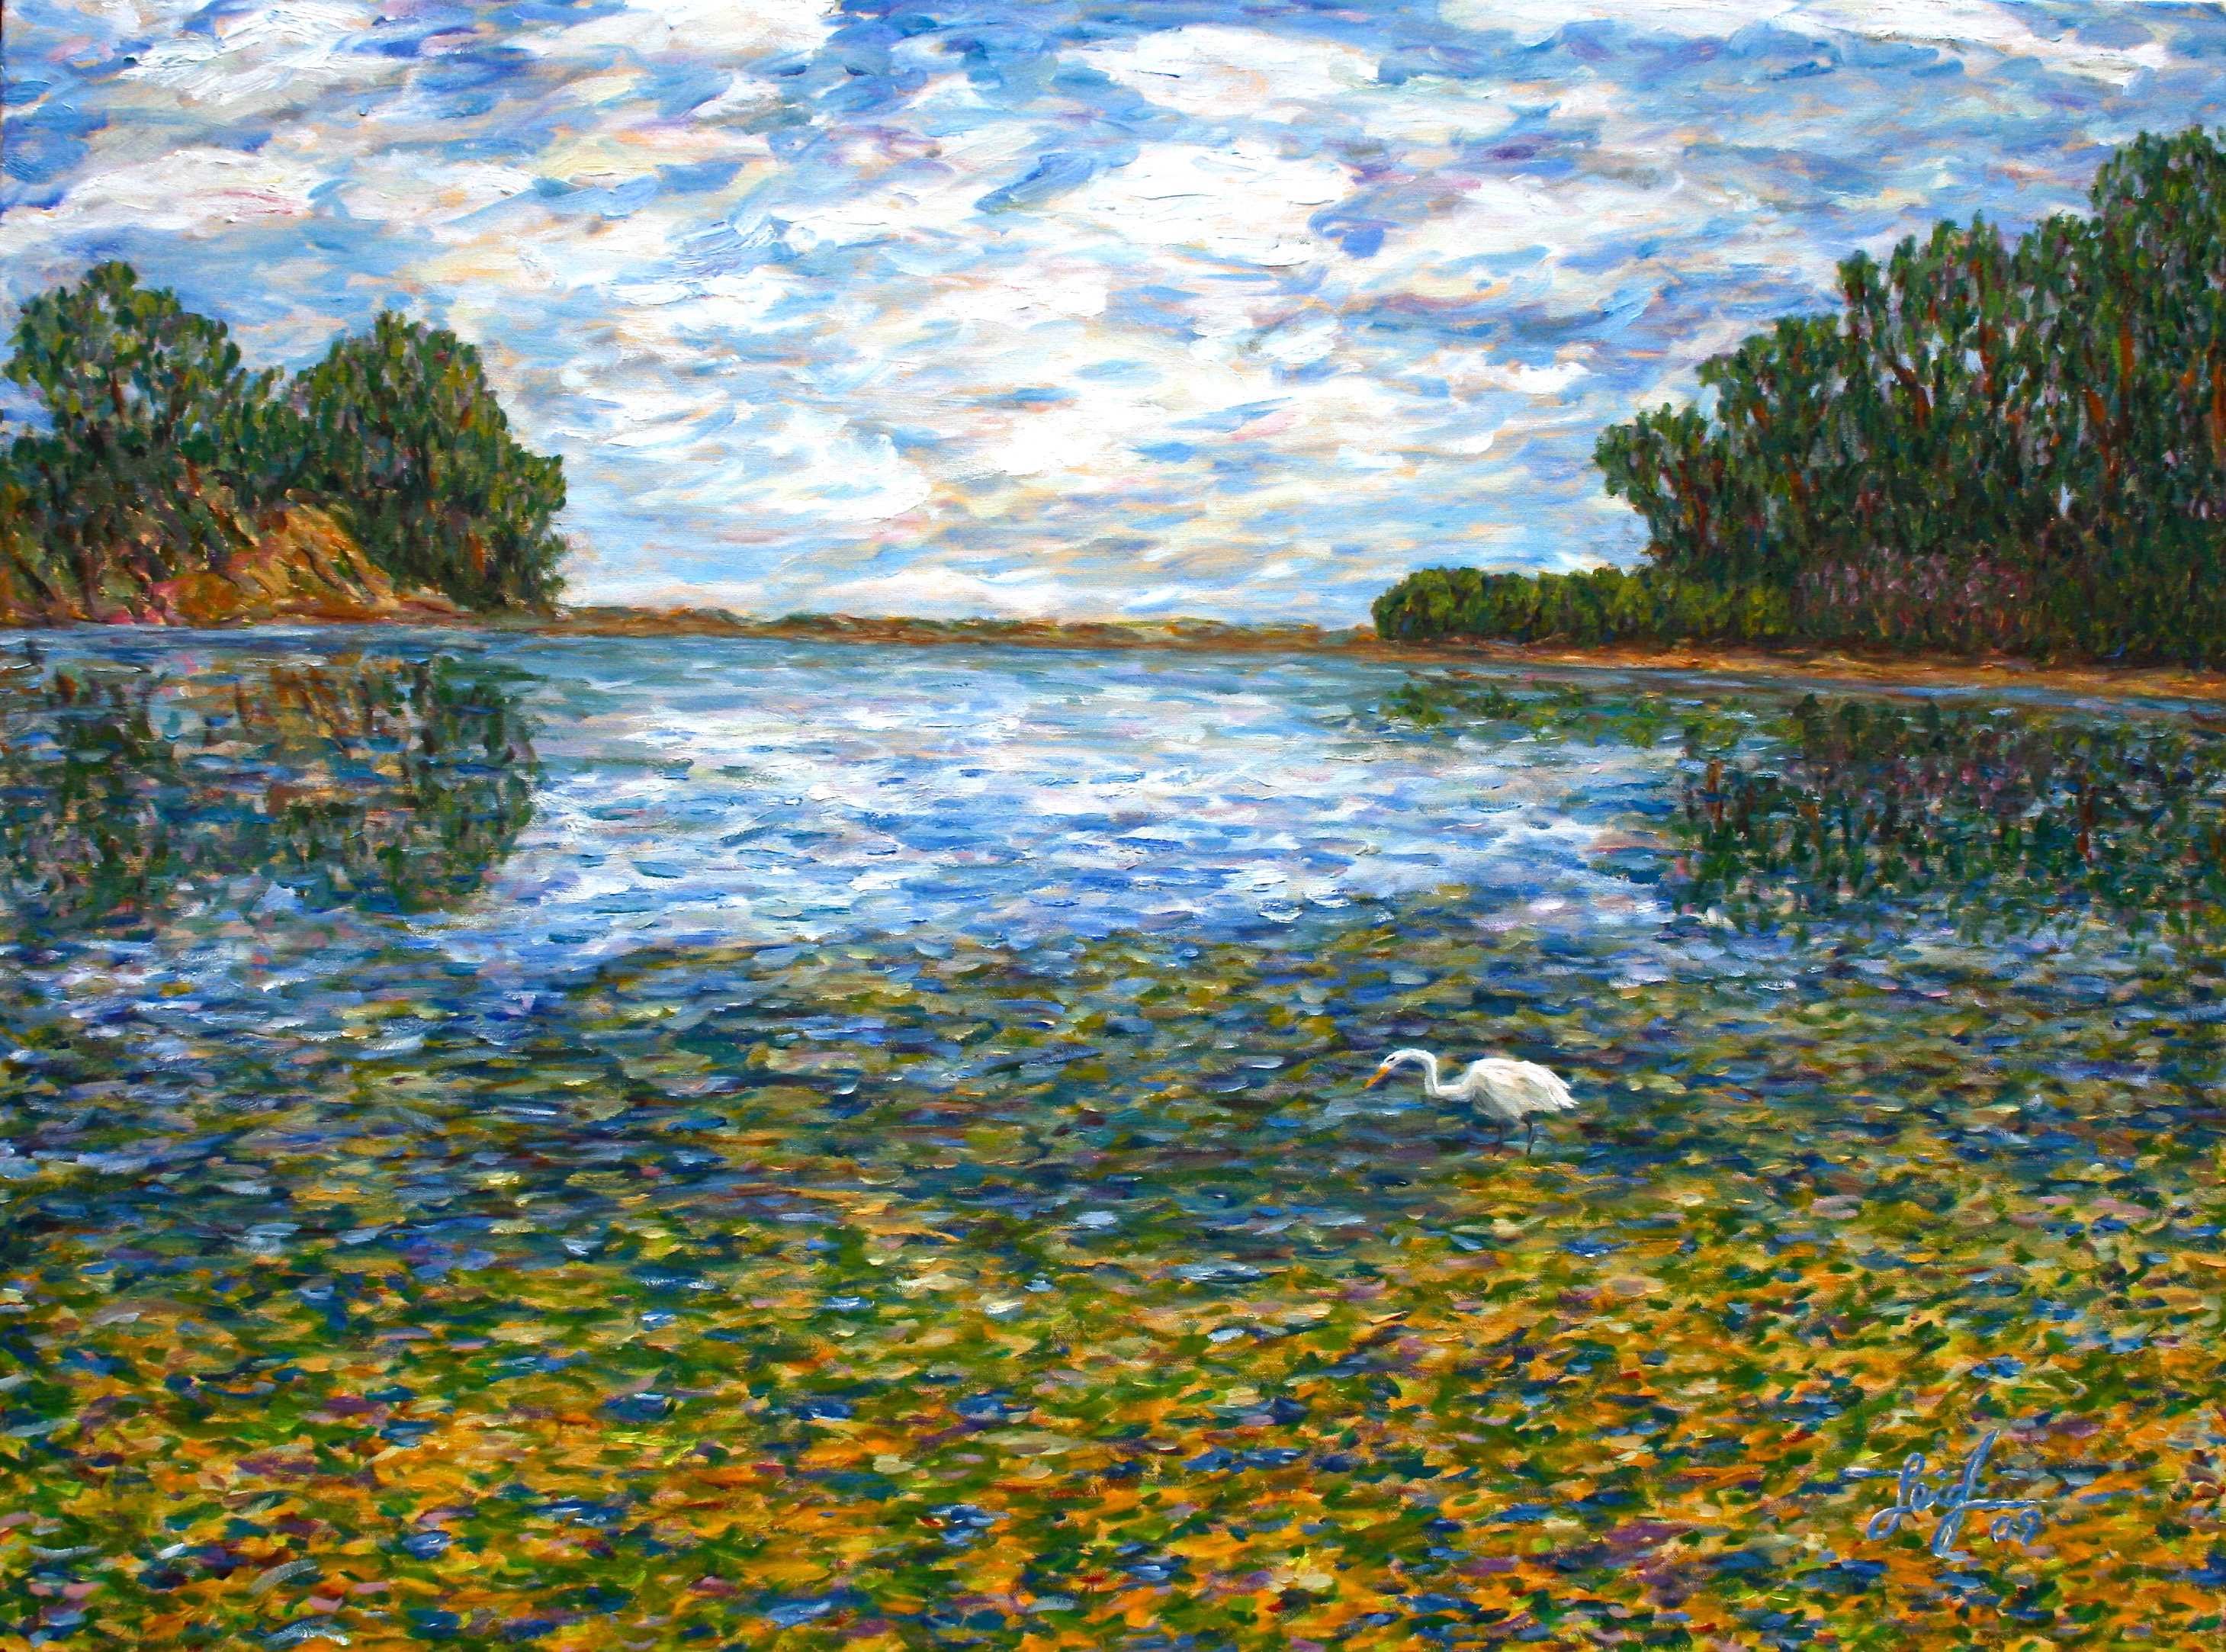 UCSB Lagoon on Charlie's Graduation Day  ~   Charlie Cohn, San Francisco  2009  •  30x40